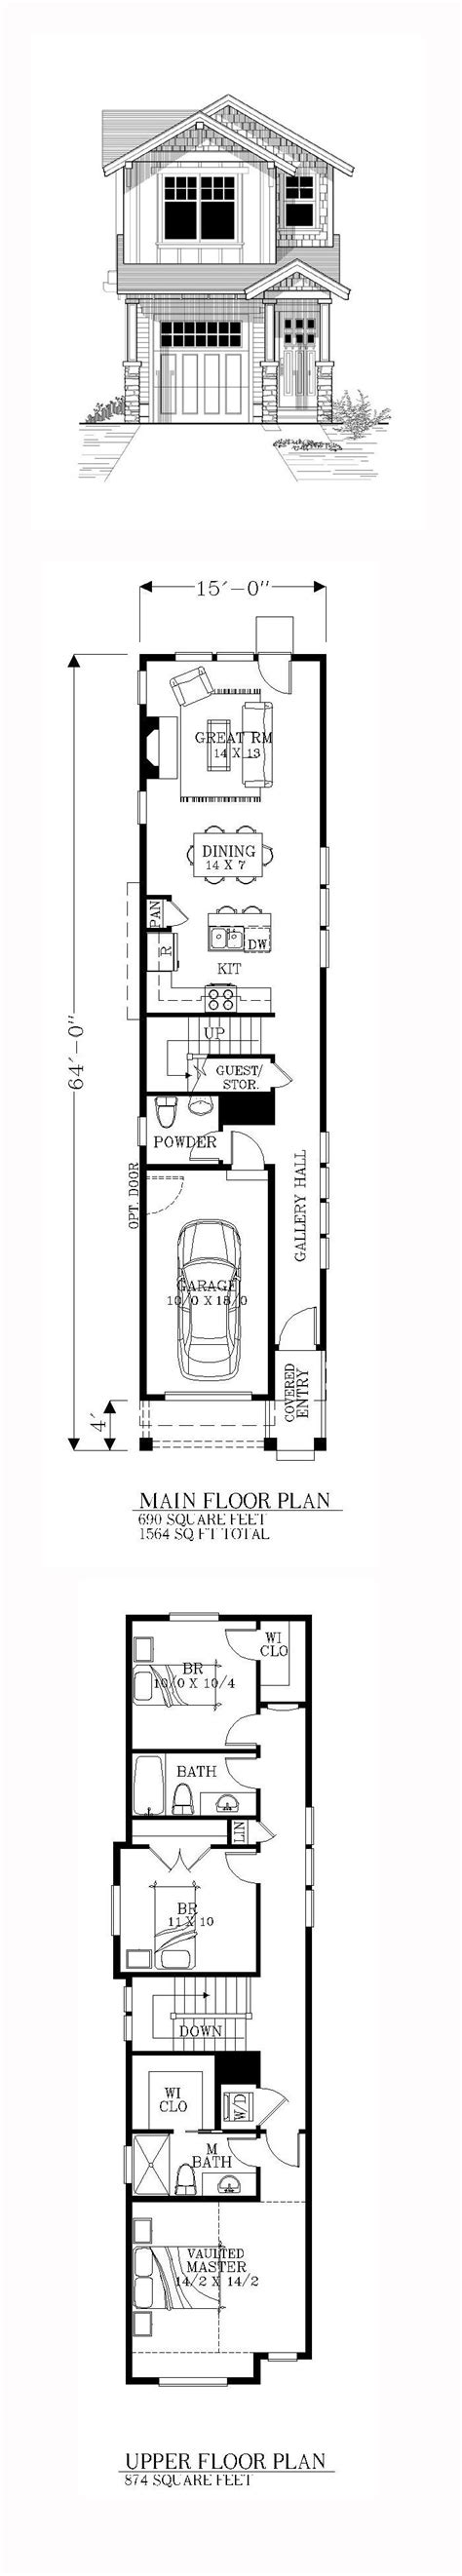 house plans for narrow lot 25 best ideas about narrow house plans on pinterest narrow lot house plans shotgun